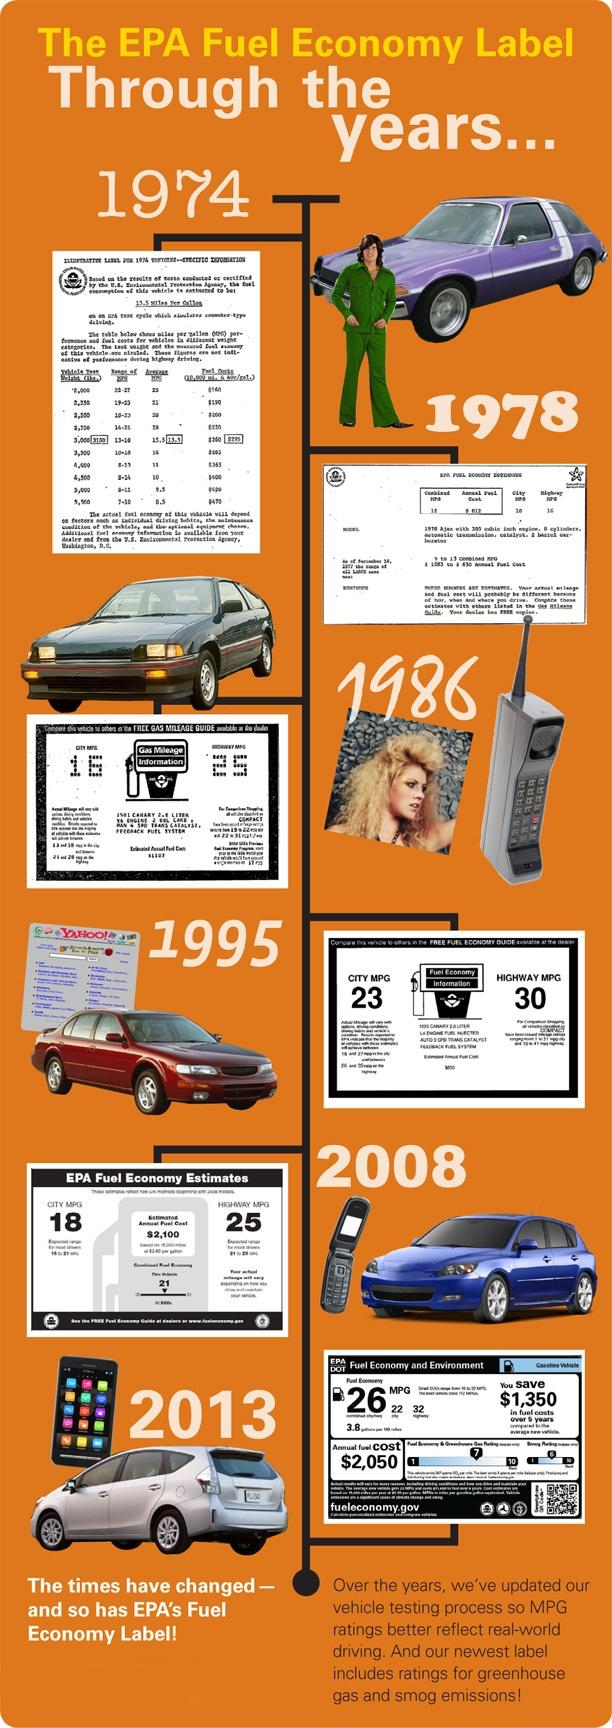 Fuel economy labels from the past